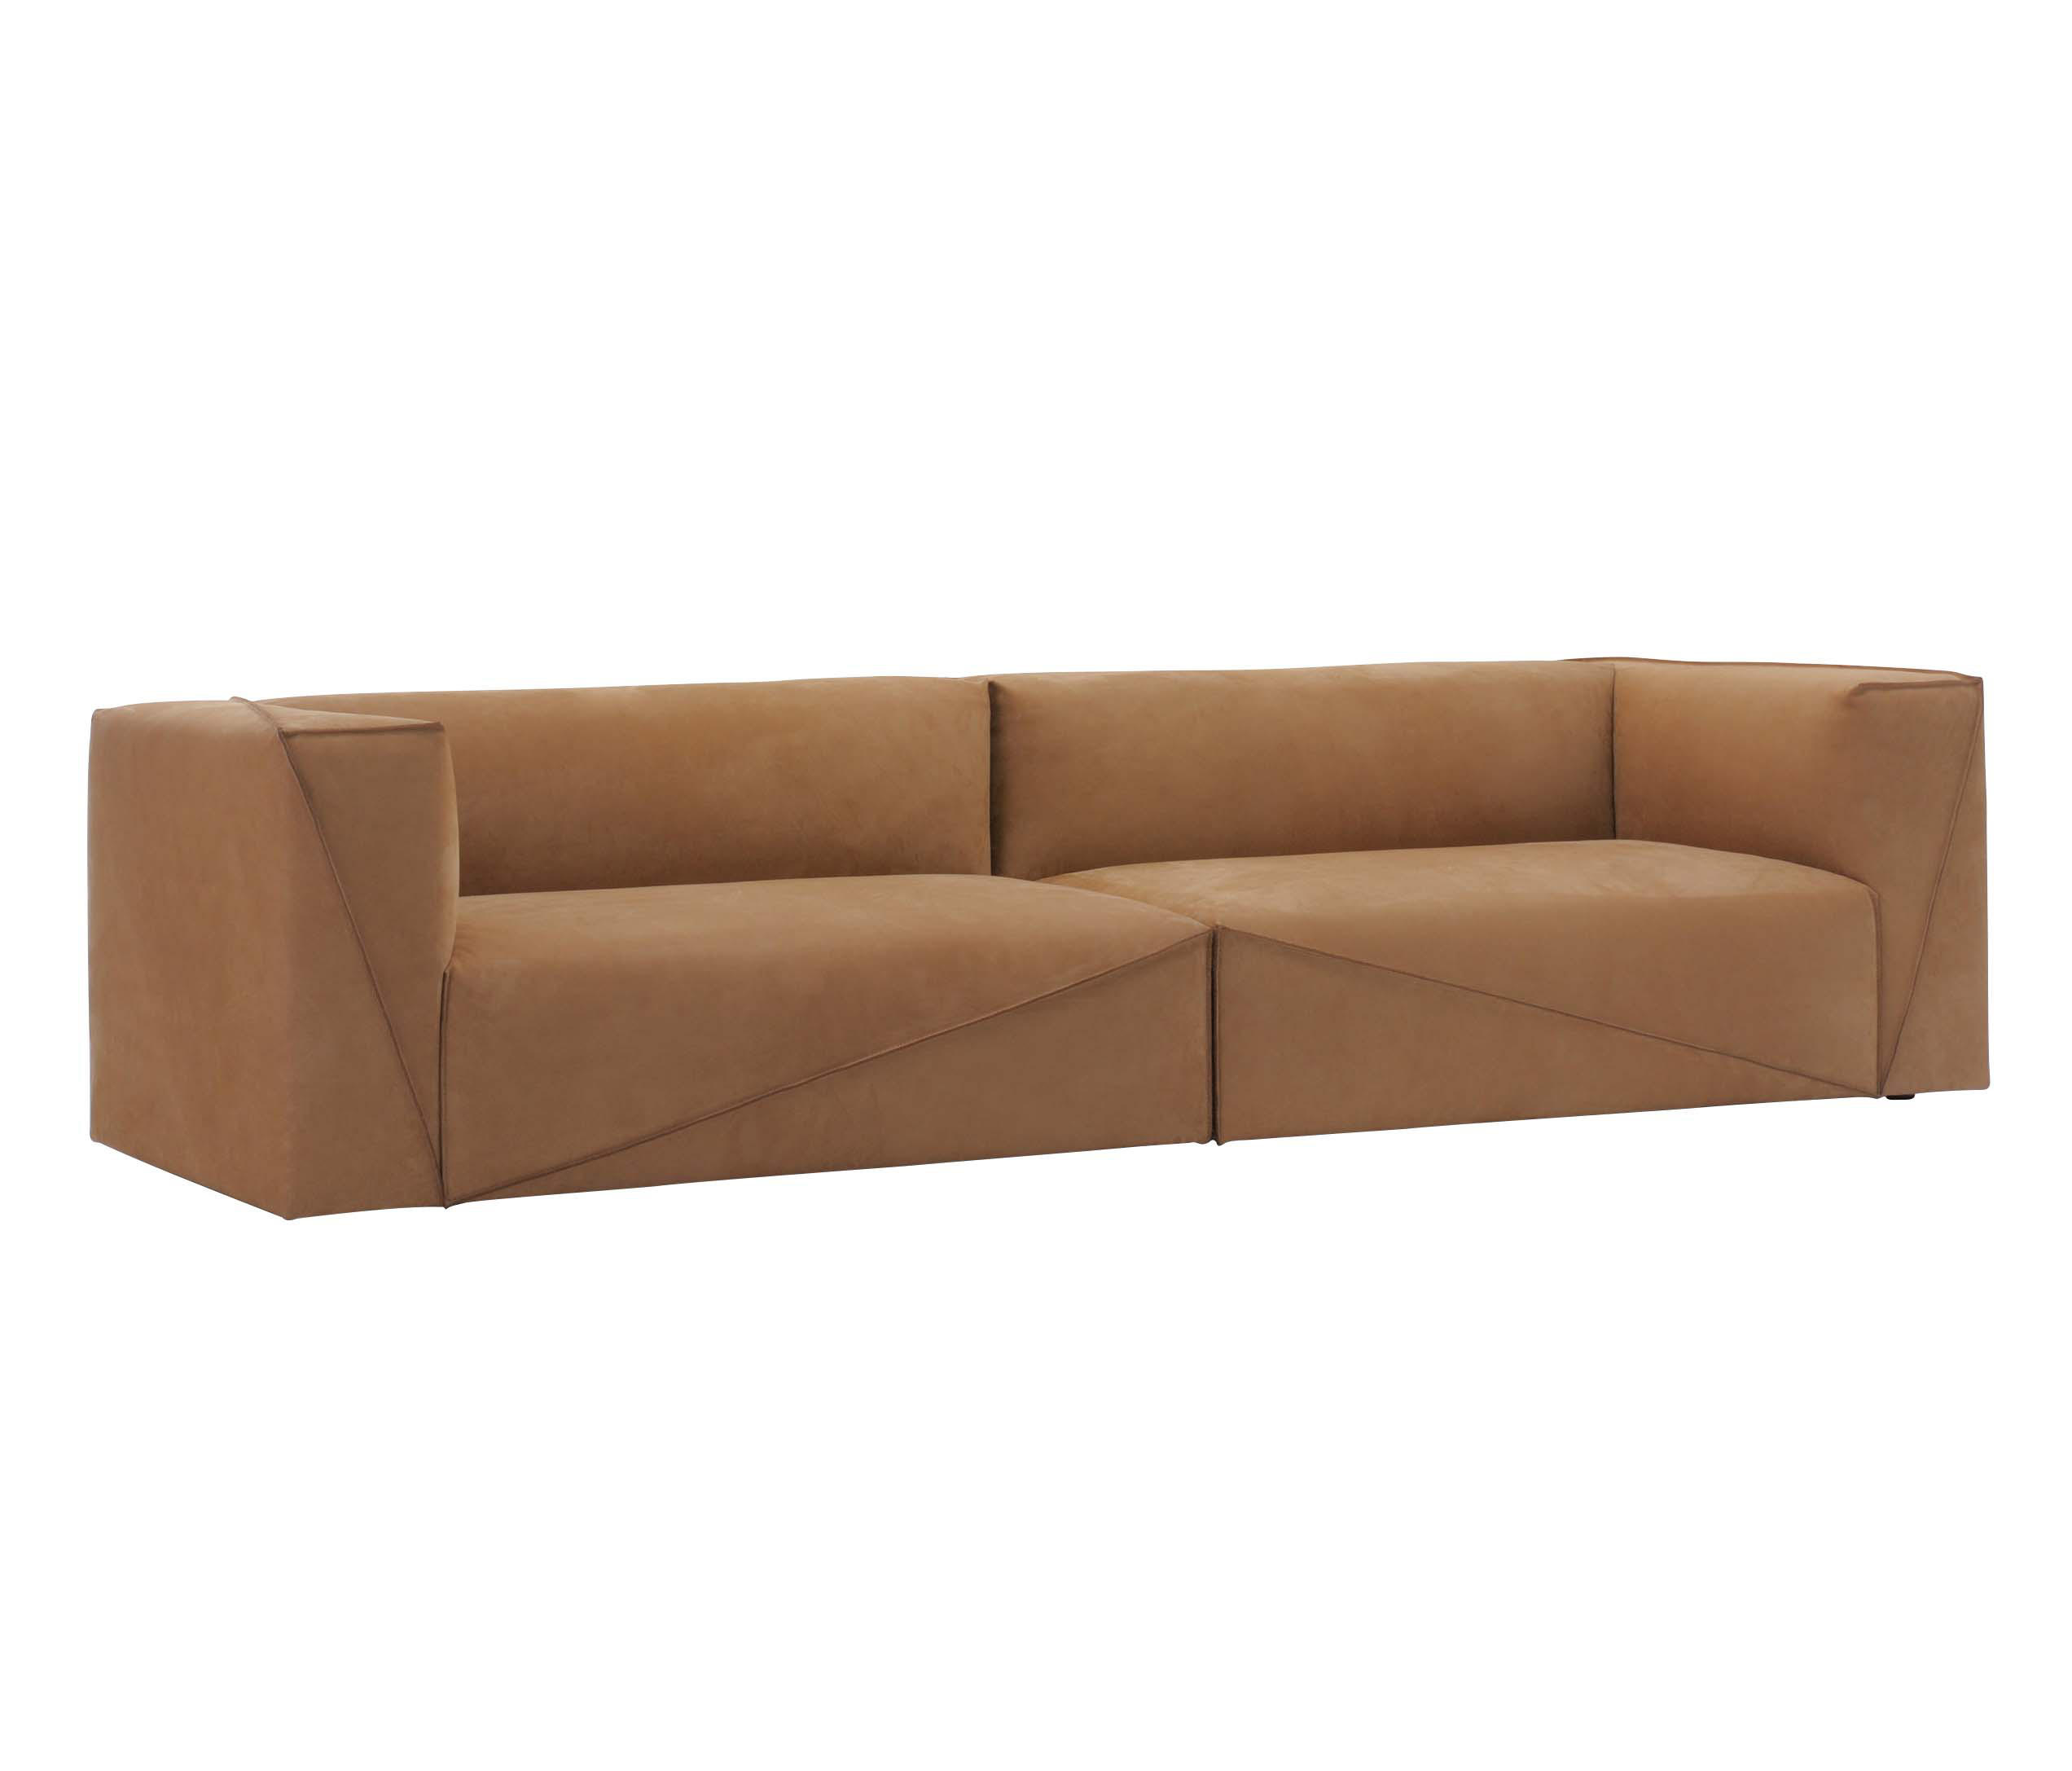 camerich sofa review cindy crawford home sleeper sectional lounge sedgewick transitional